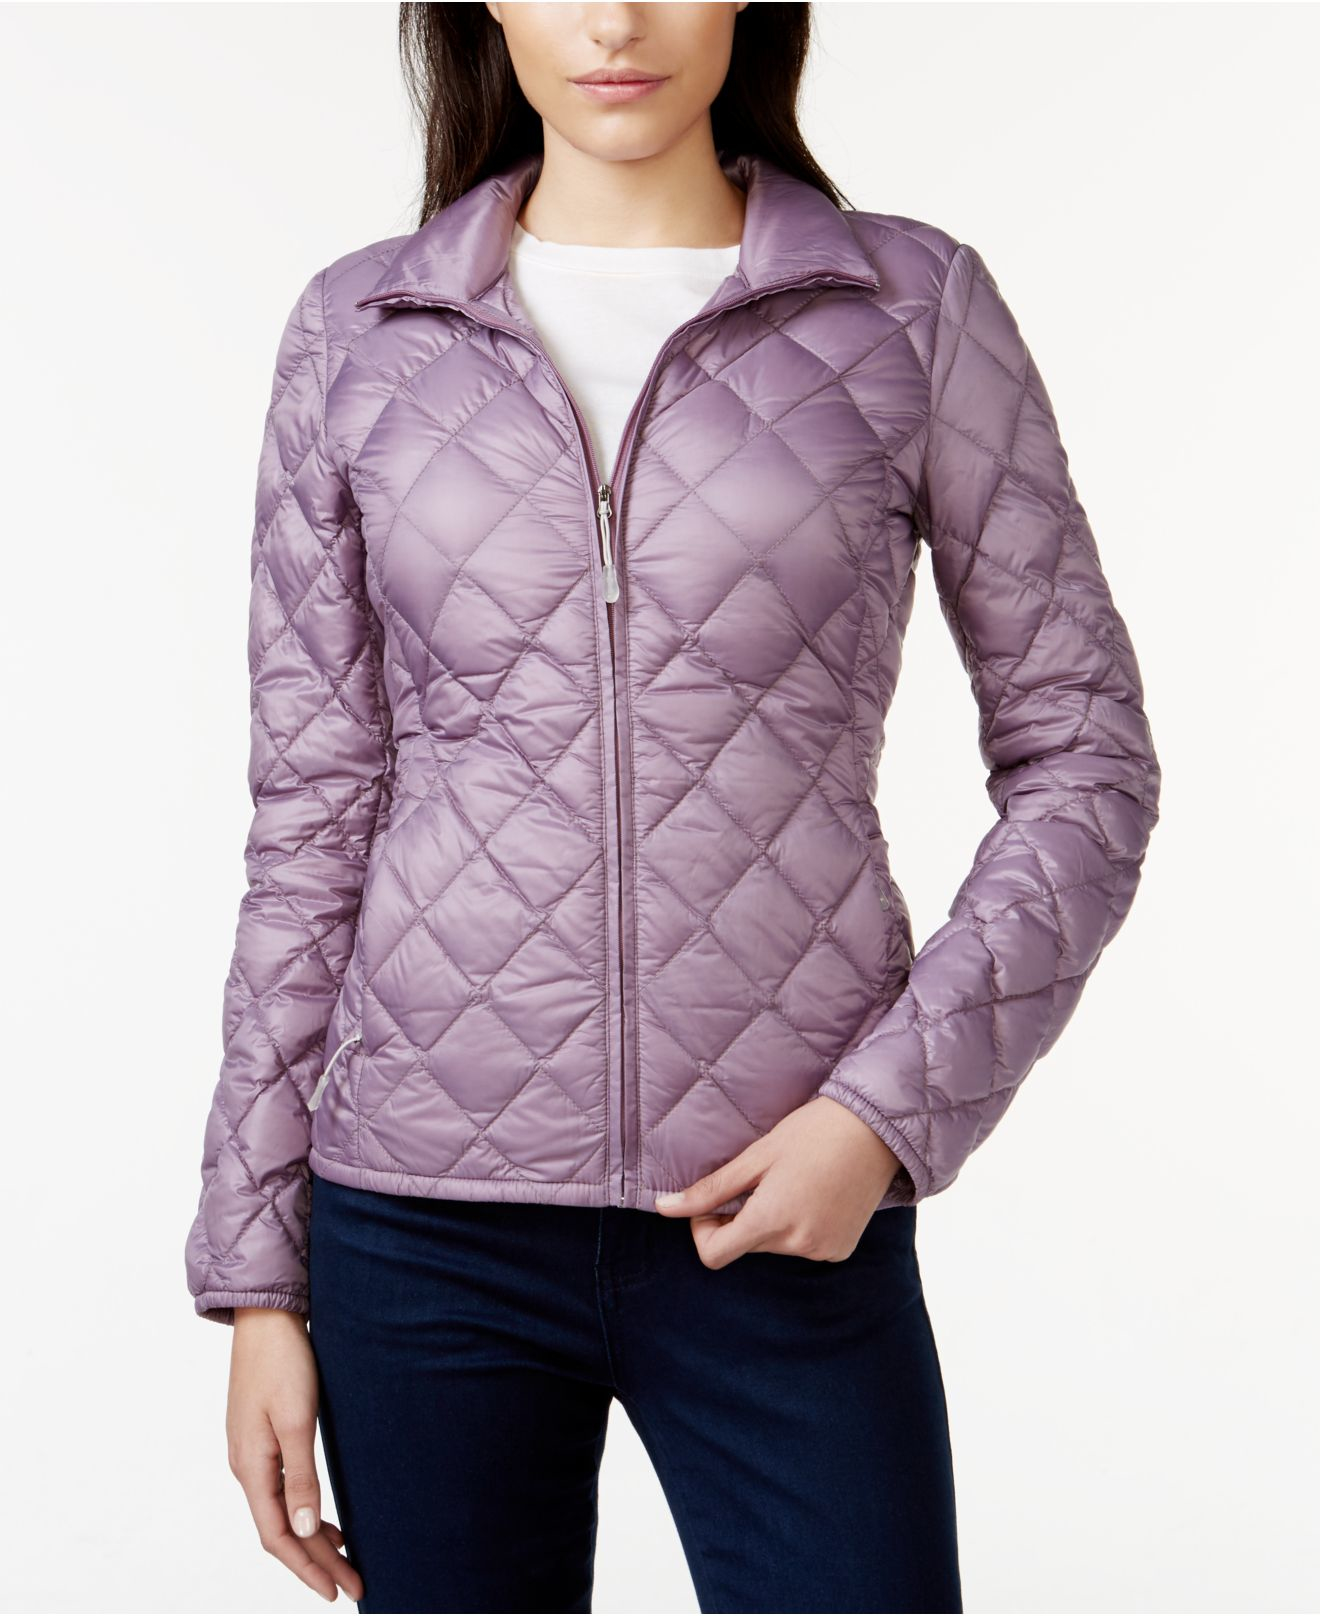 Brand: 32 Degrees. Showing 40 of results that match your query. Search Product Result. Product - 32 Degrees Men's Sherpa Lined Fleece Jacket, Gray - Medium. Product Image. Clothing, Electronics and Health & Beauty. Marketplace items (products not sold by perscrib-serp.cf).